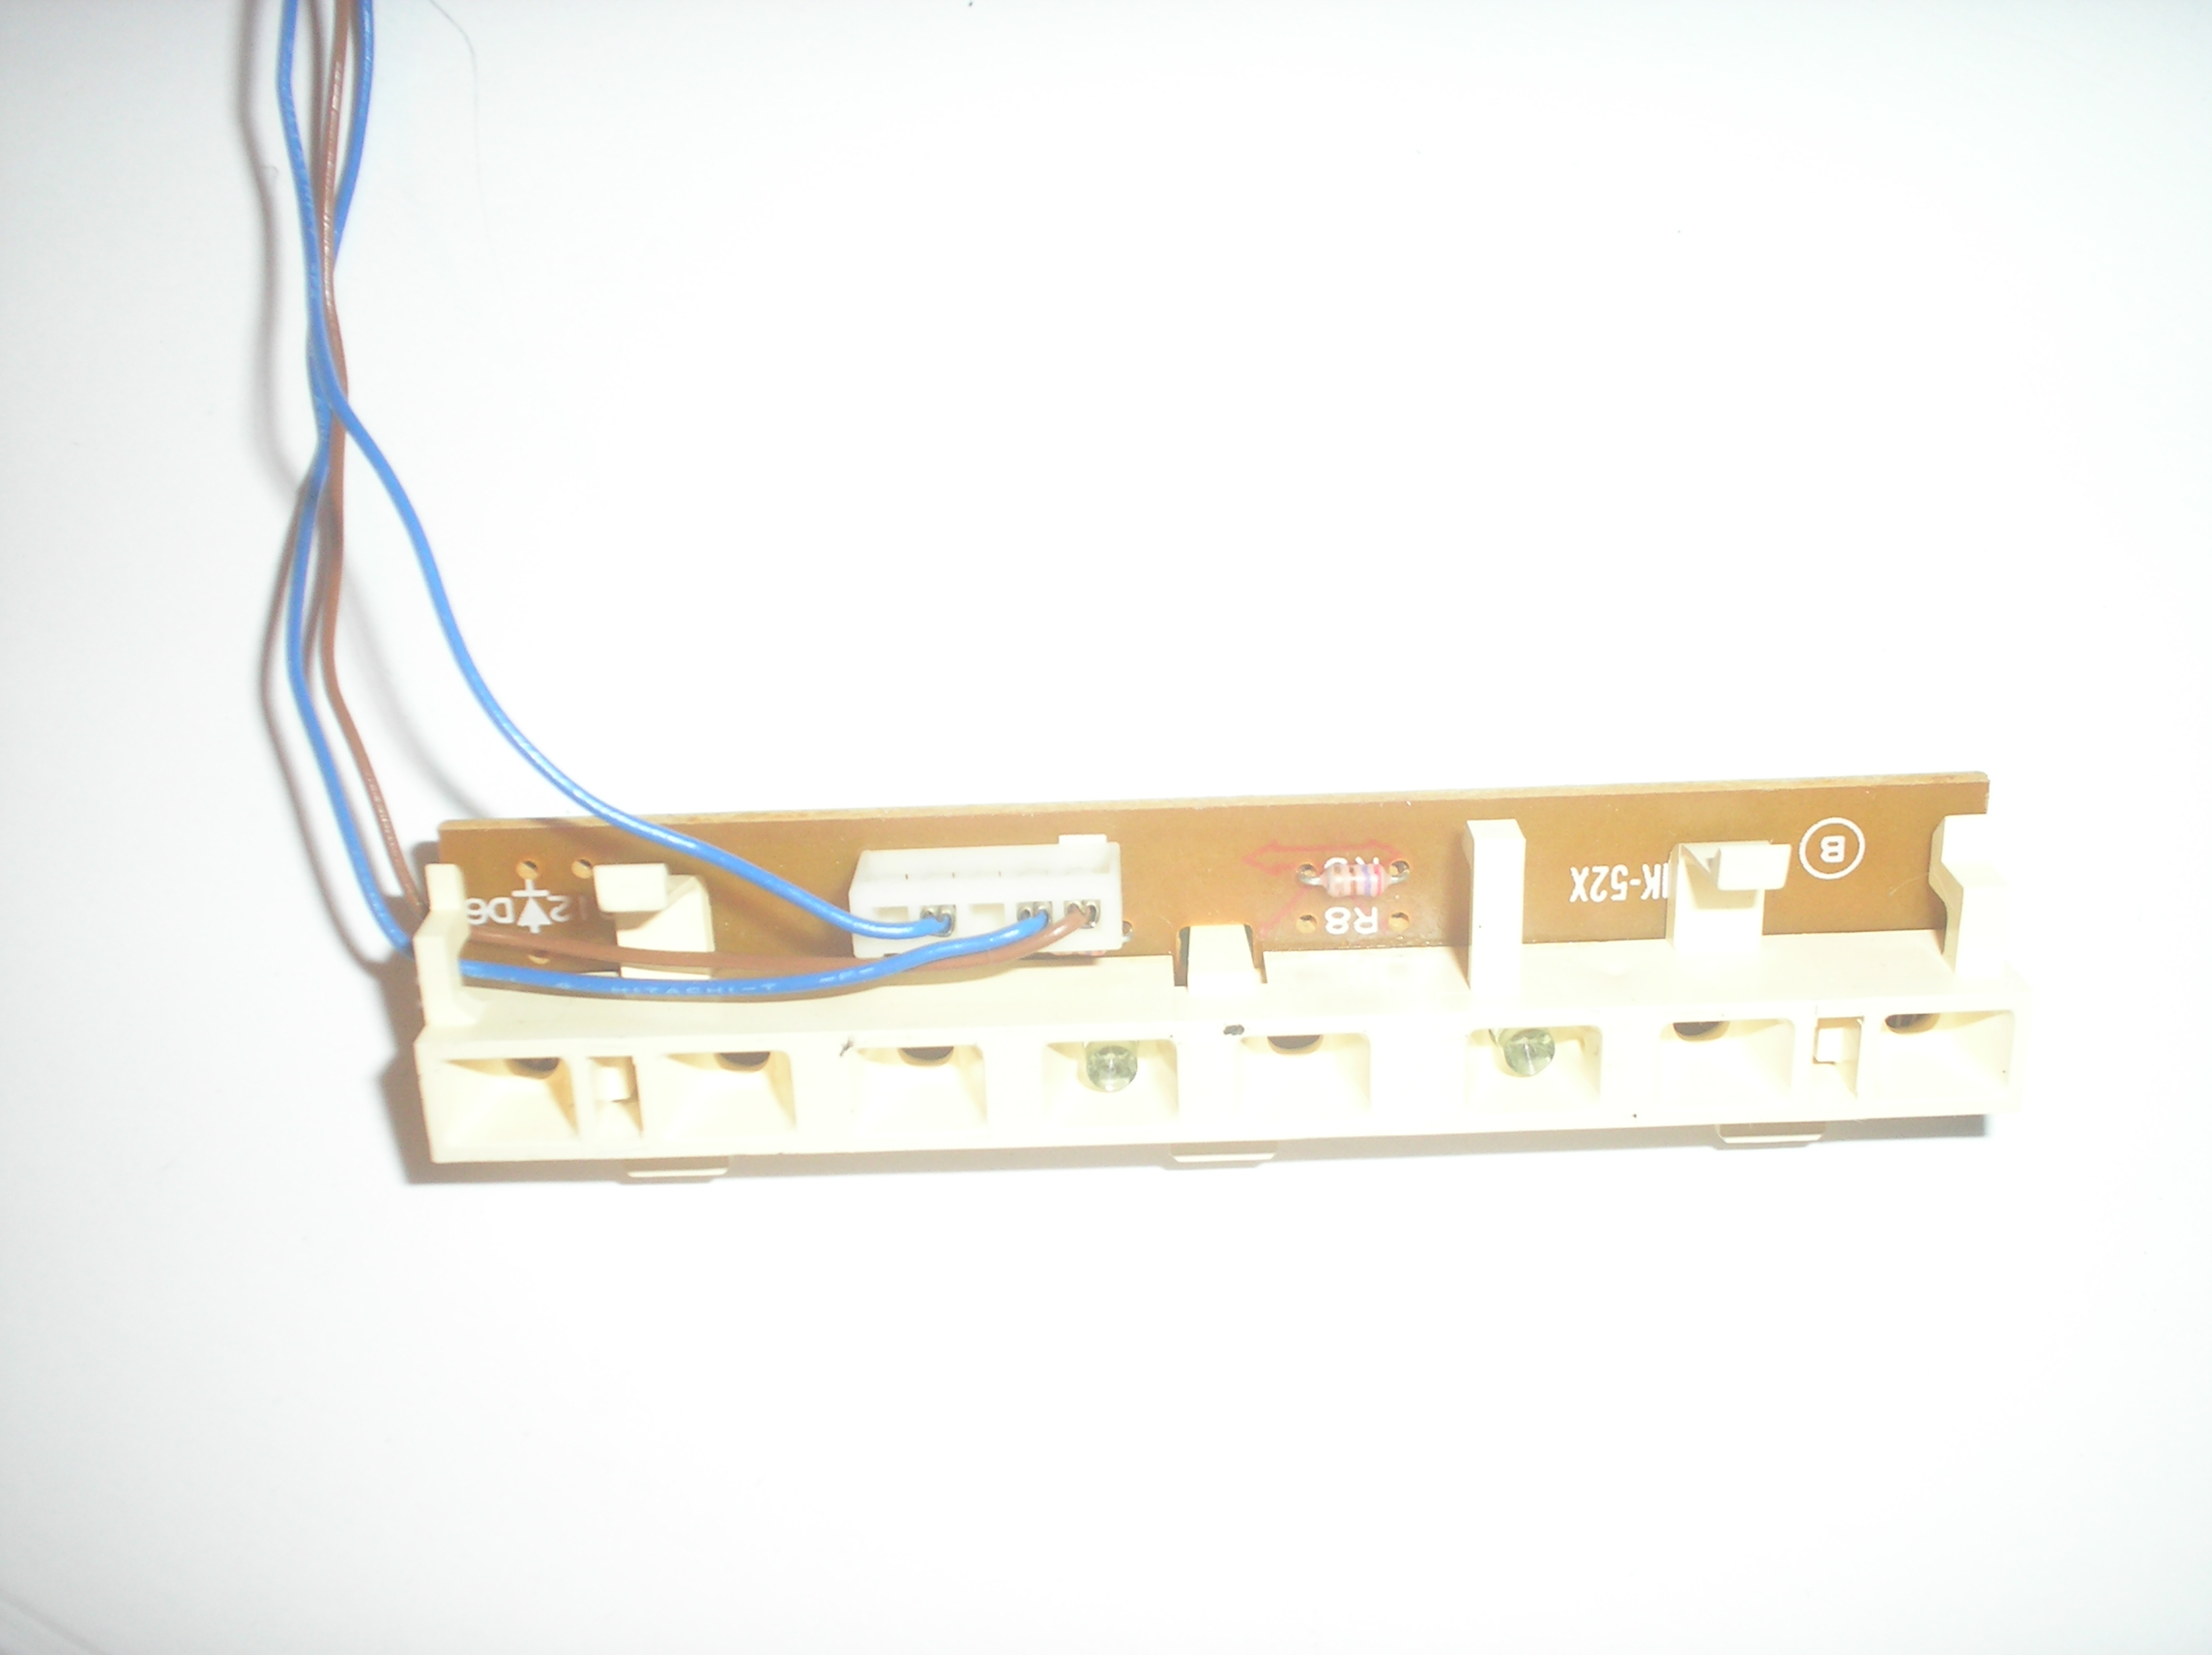 RS-T230 Cassette Deck B Tape Indicator Board Assy.  item is used. Deck B LED Block Assy  Technics part number SLNST230-KM1